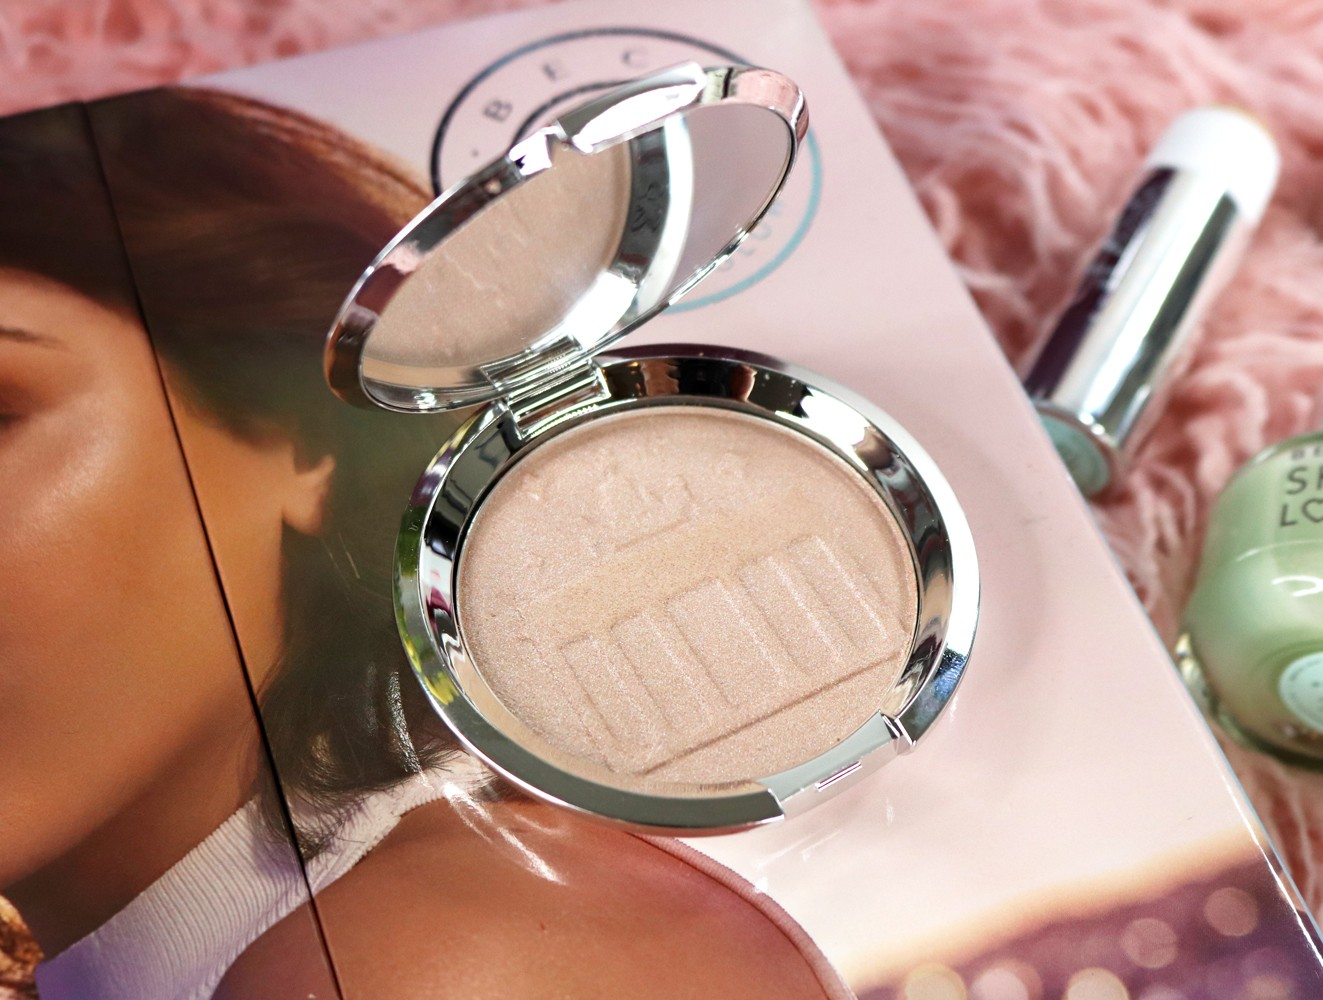 Becca x Hatrice Schmidt Highlighter Review and Swatches